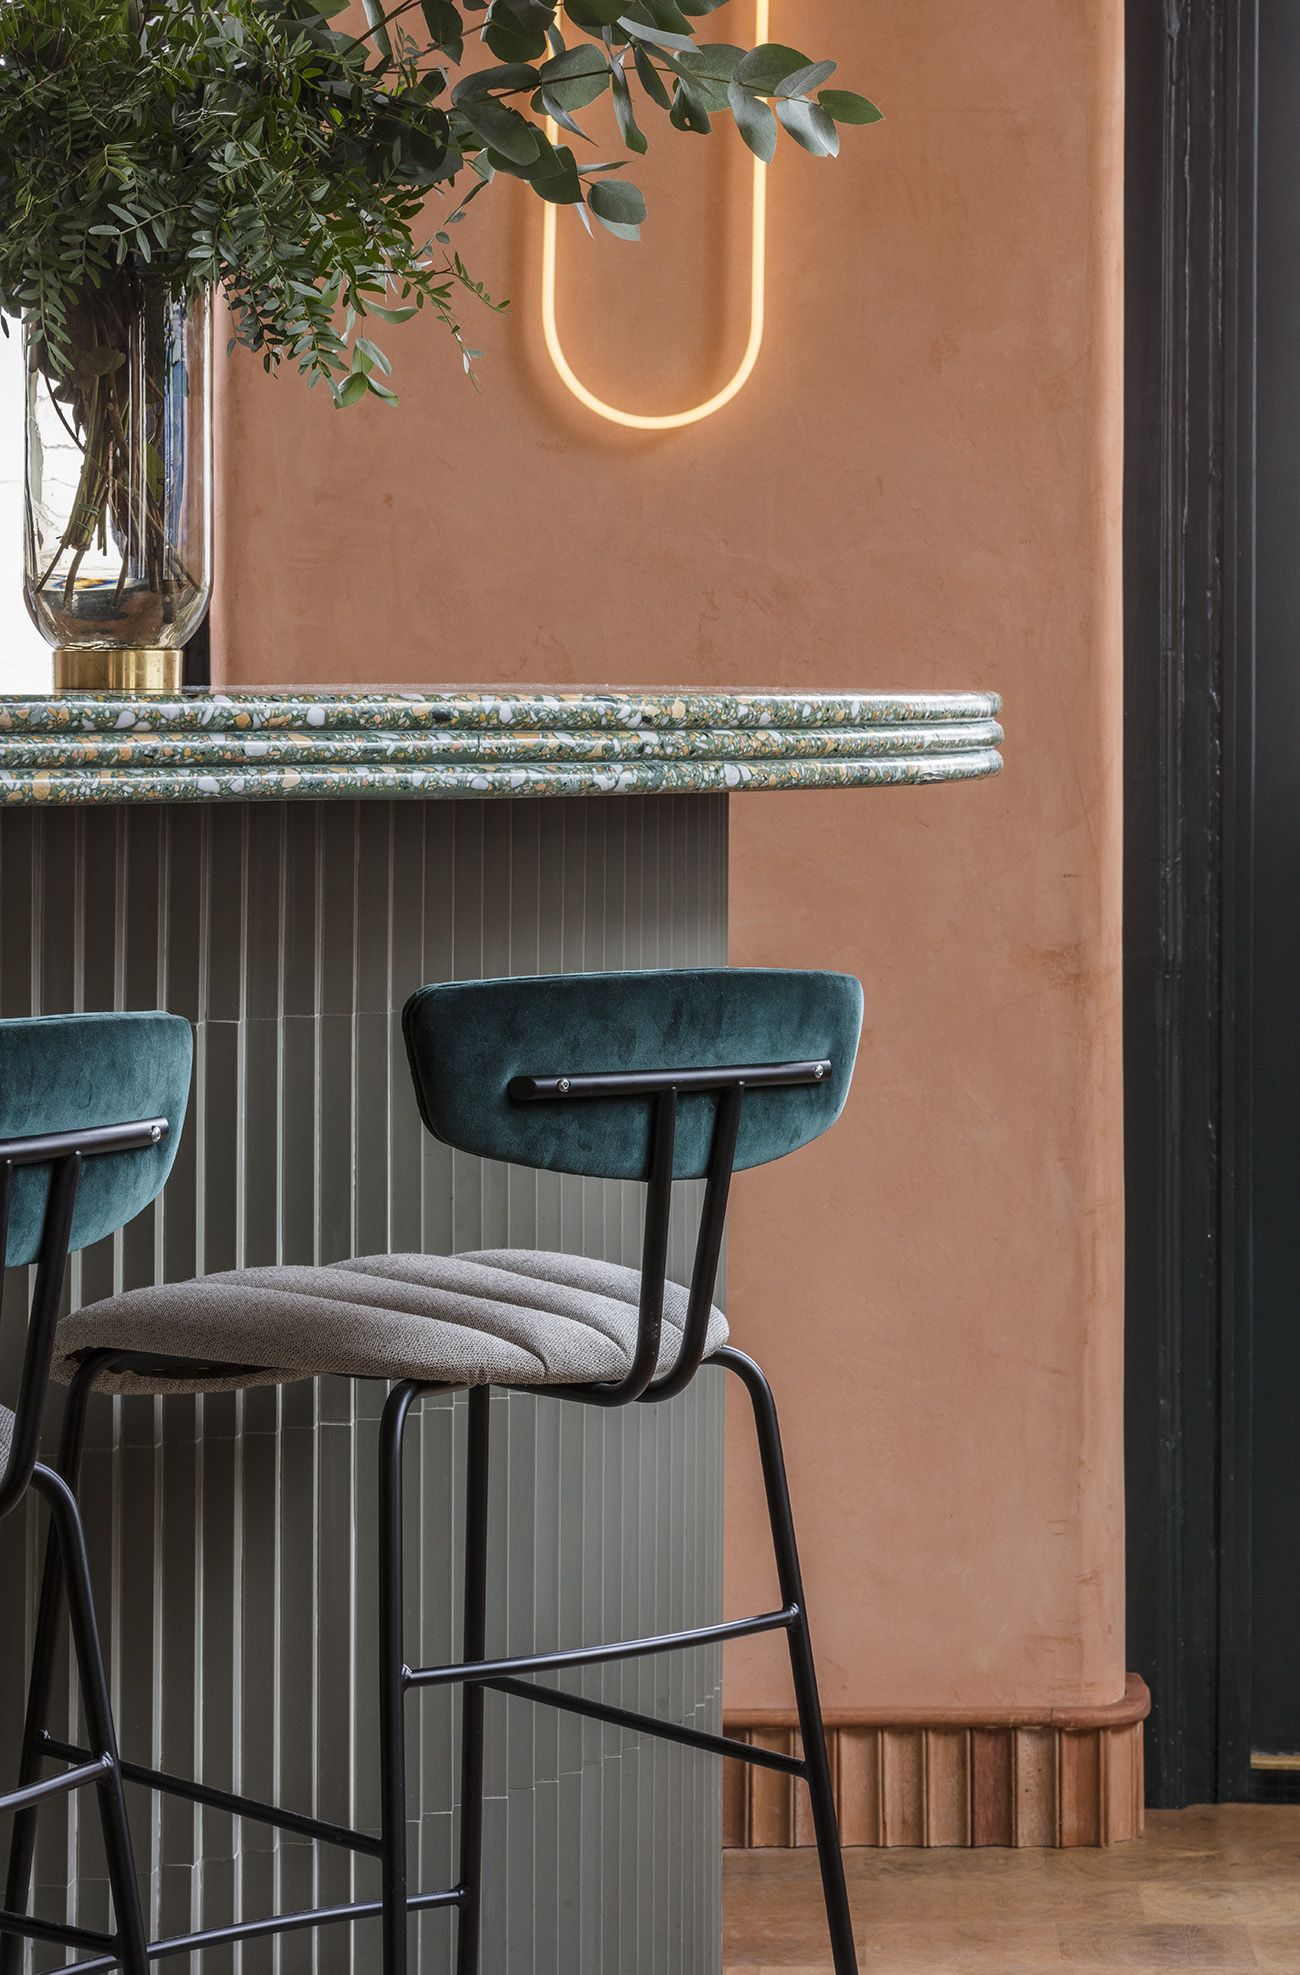 Industriele Keuken Restaurant This London Restaurant Features 10 Of The Hottest Interiors Trends